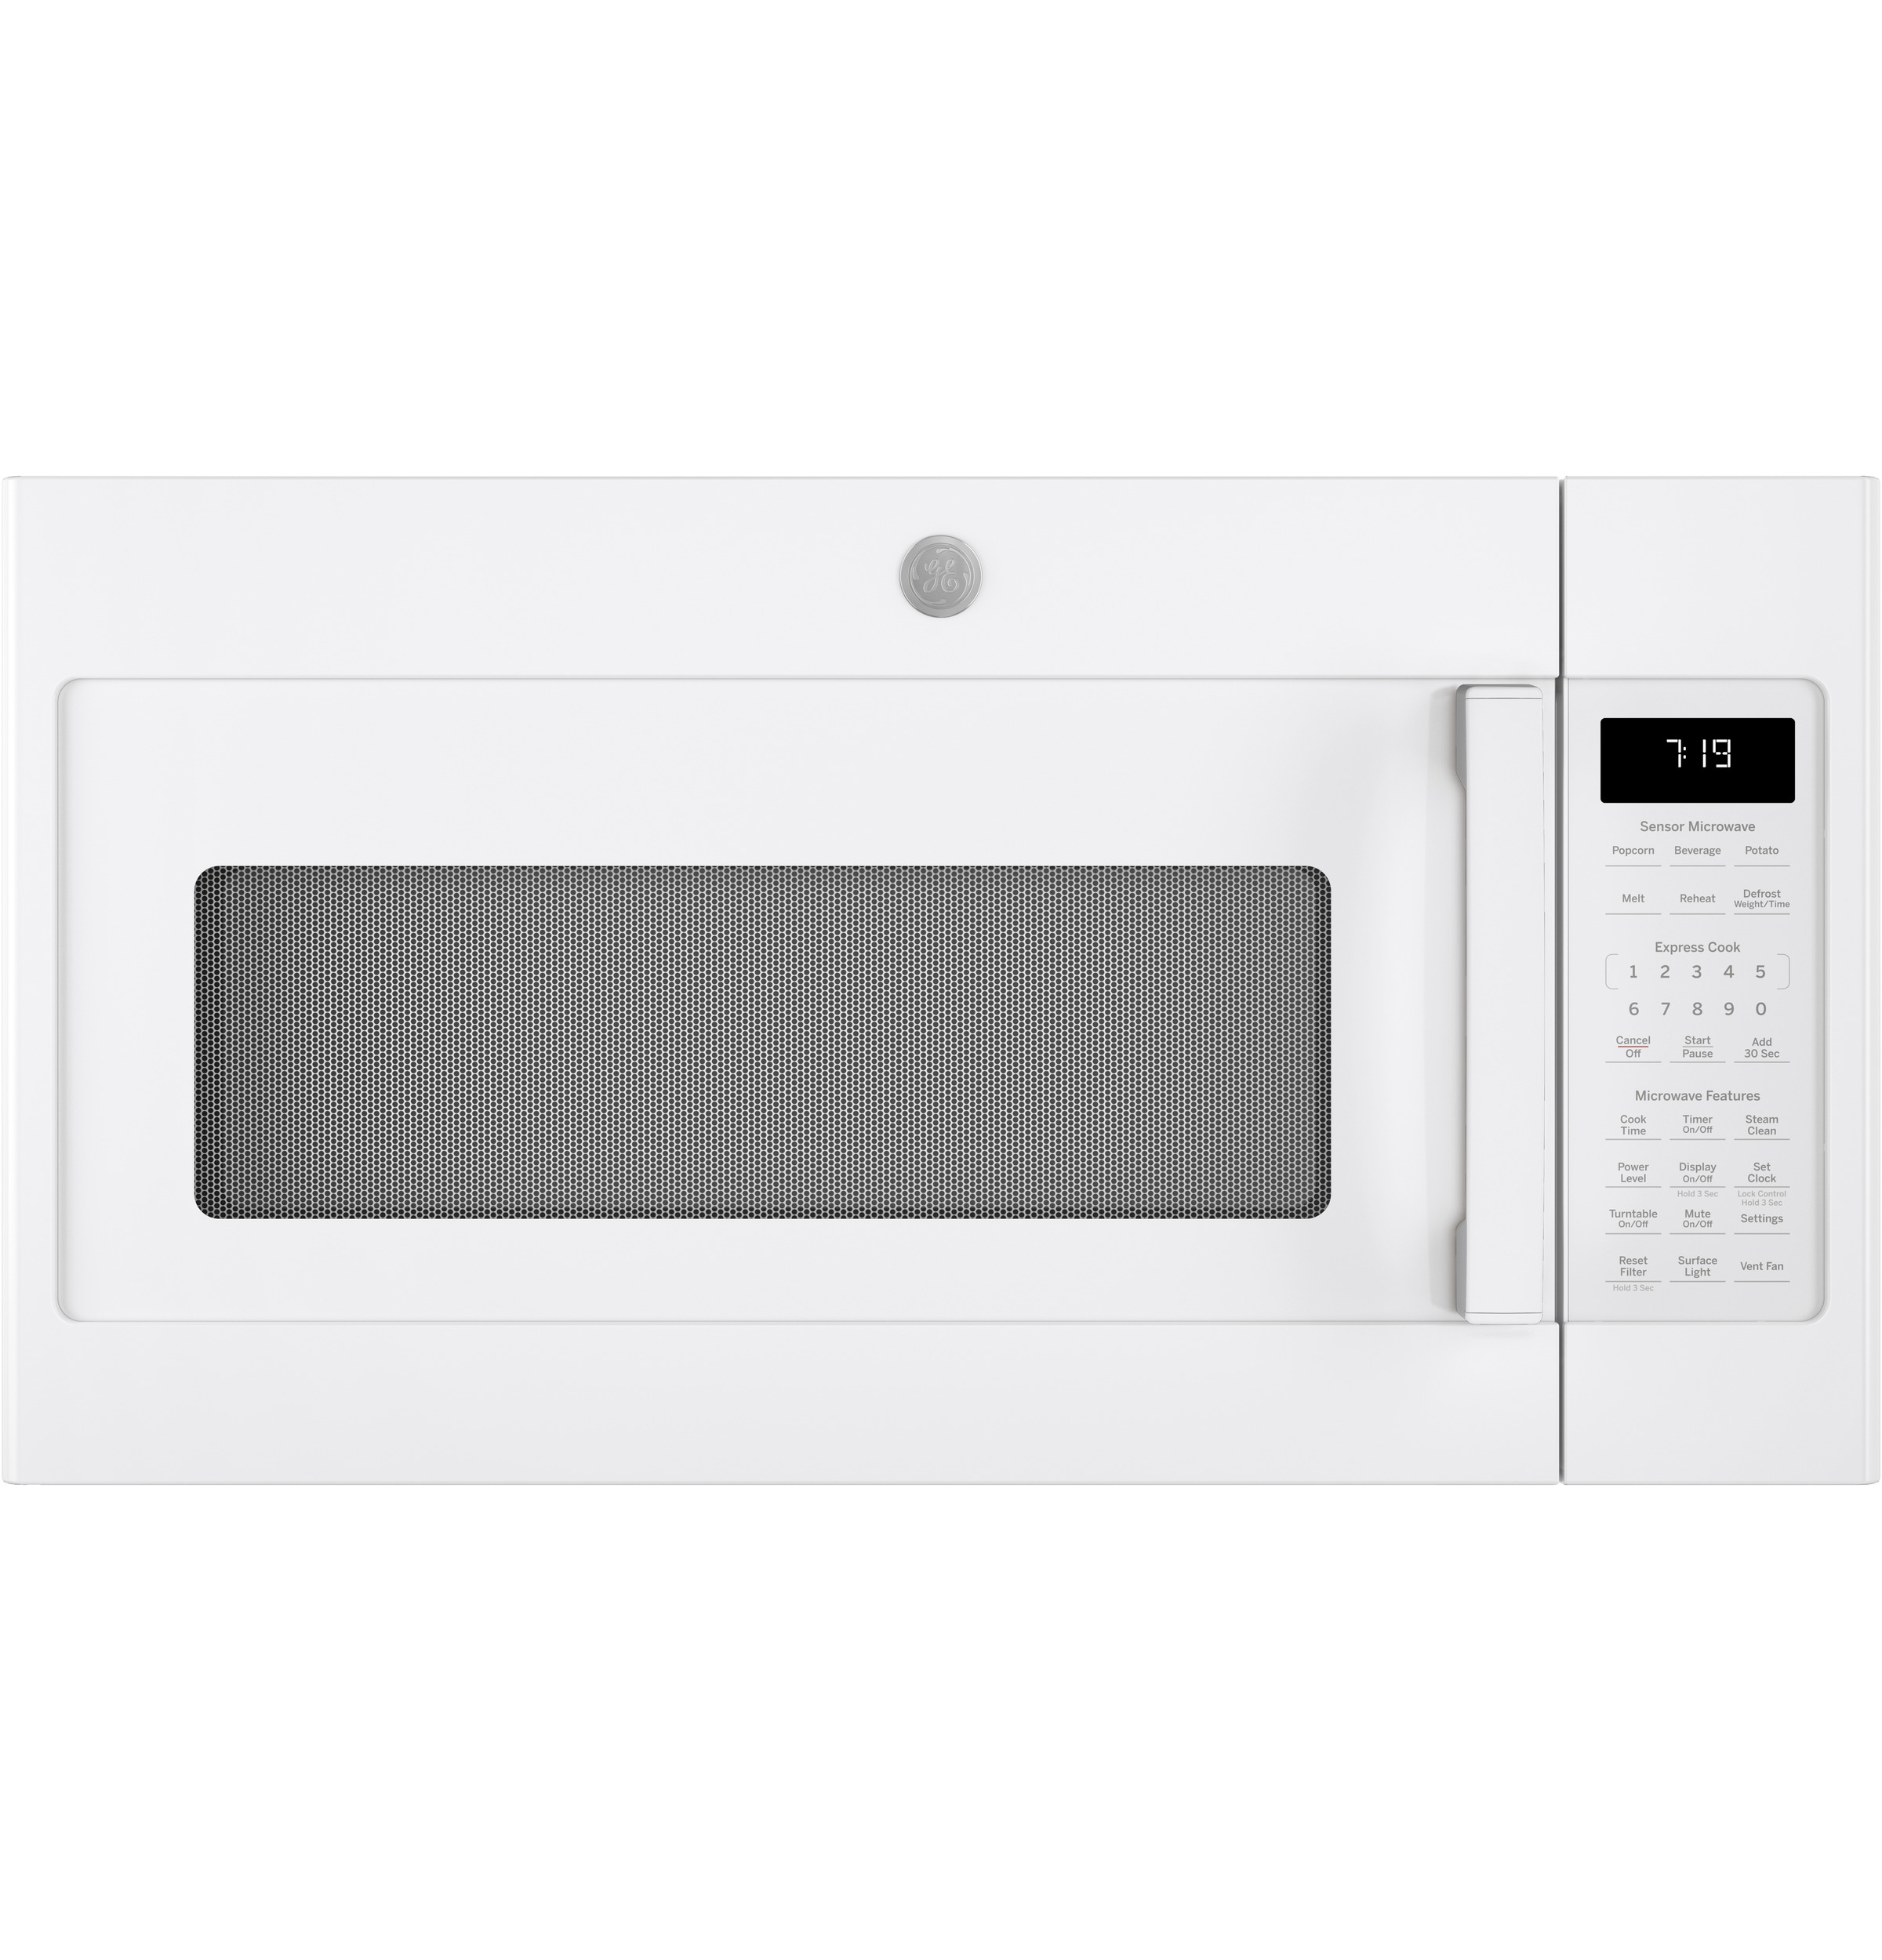 microwave at voss tv appliance in